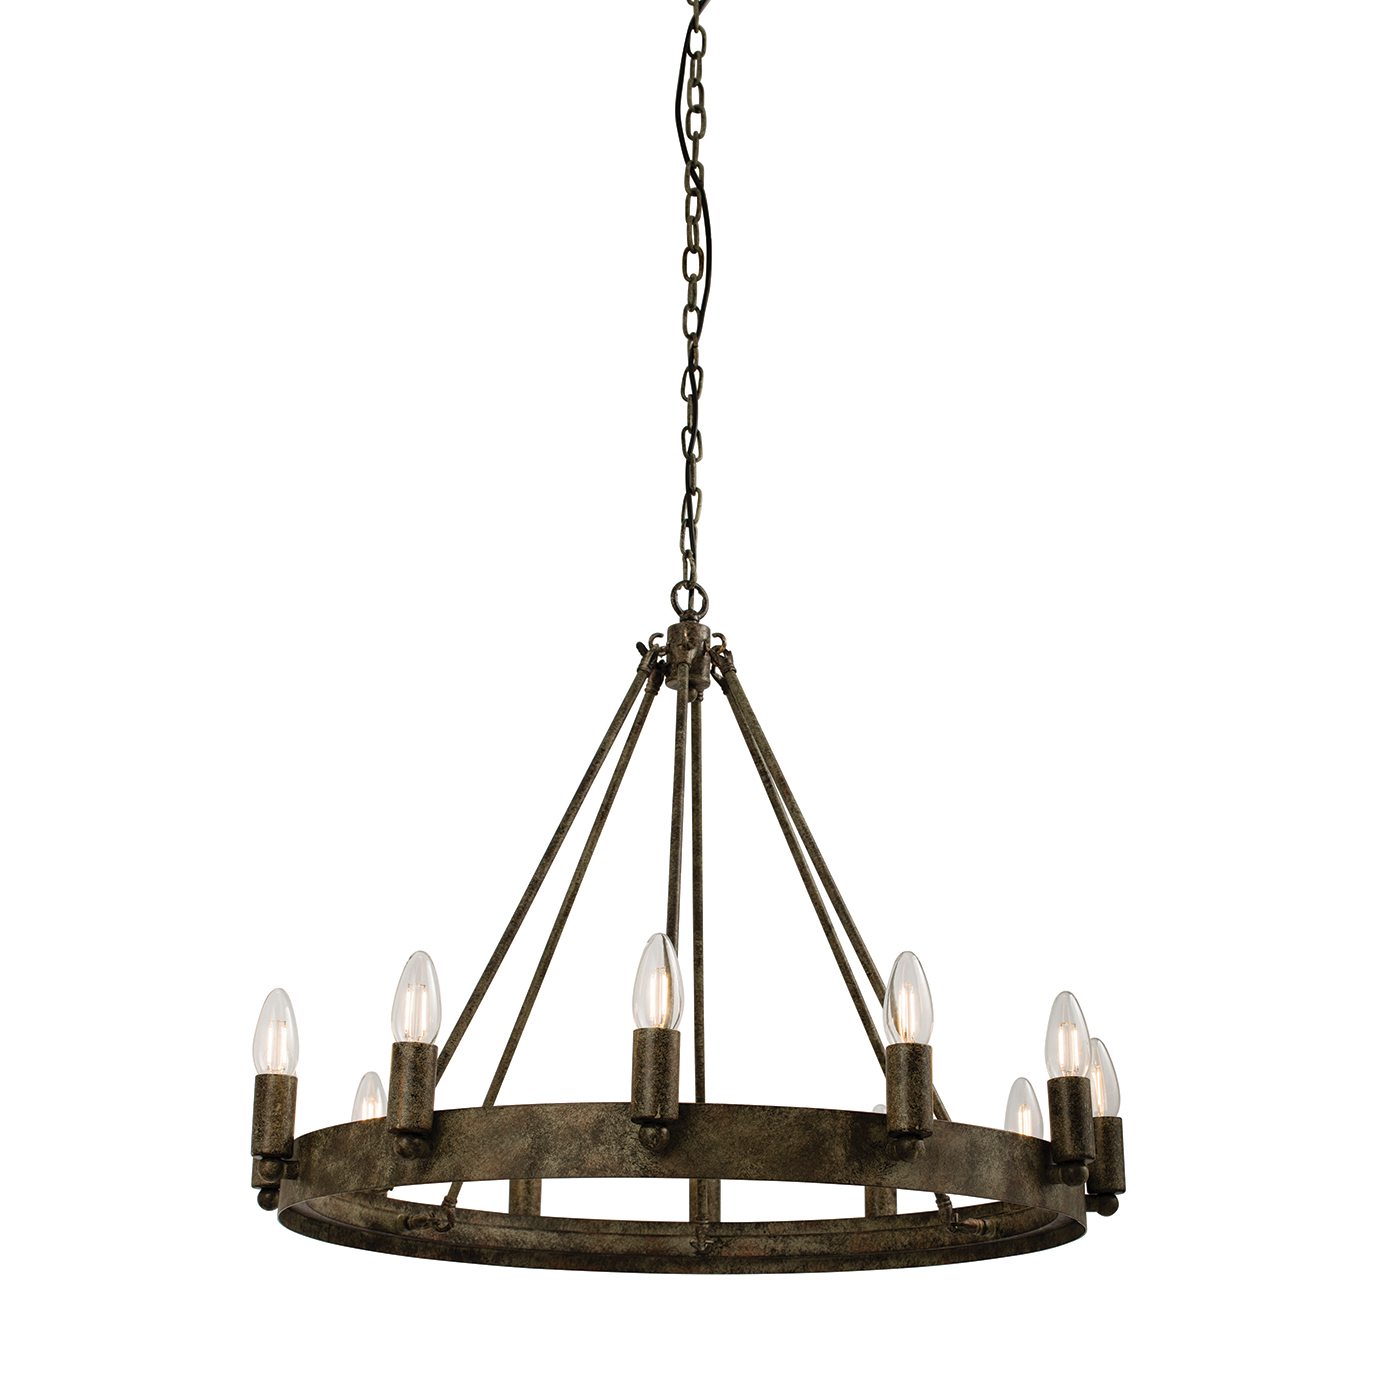 Endon Chevalier chandelier 12x 60W Aged metal effect paint Thumbnail 1